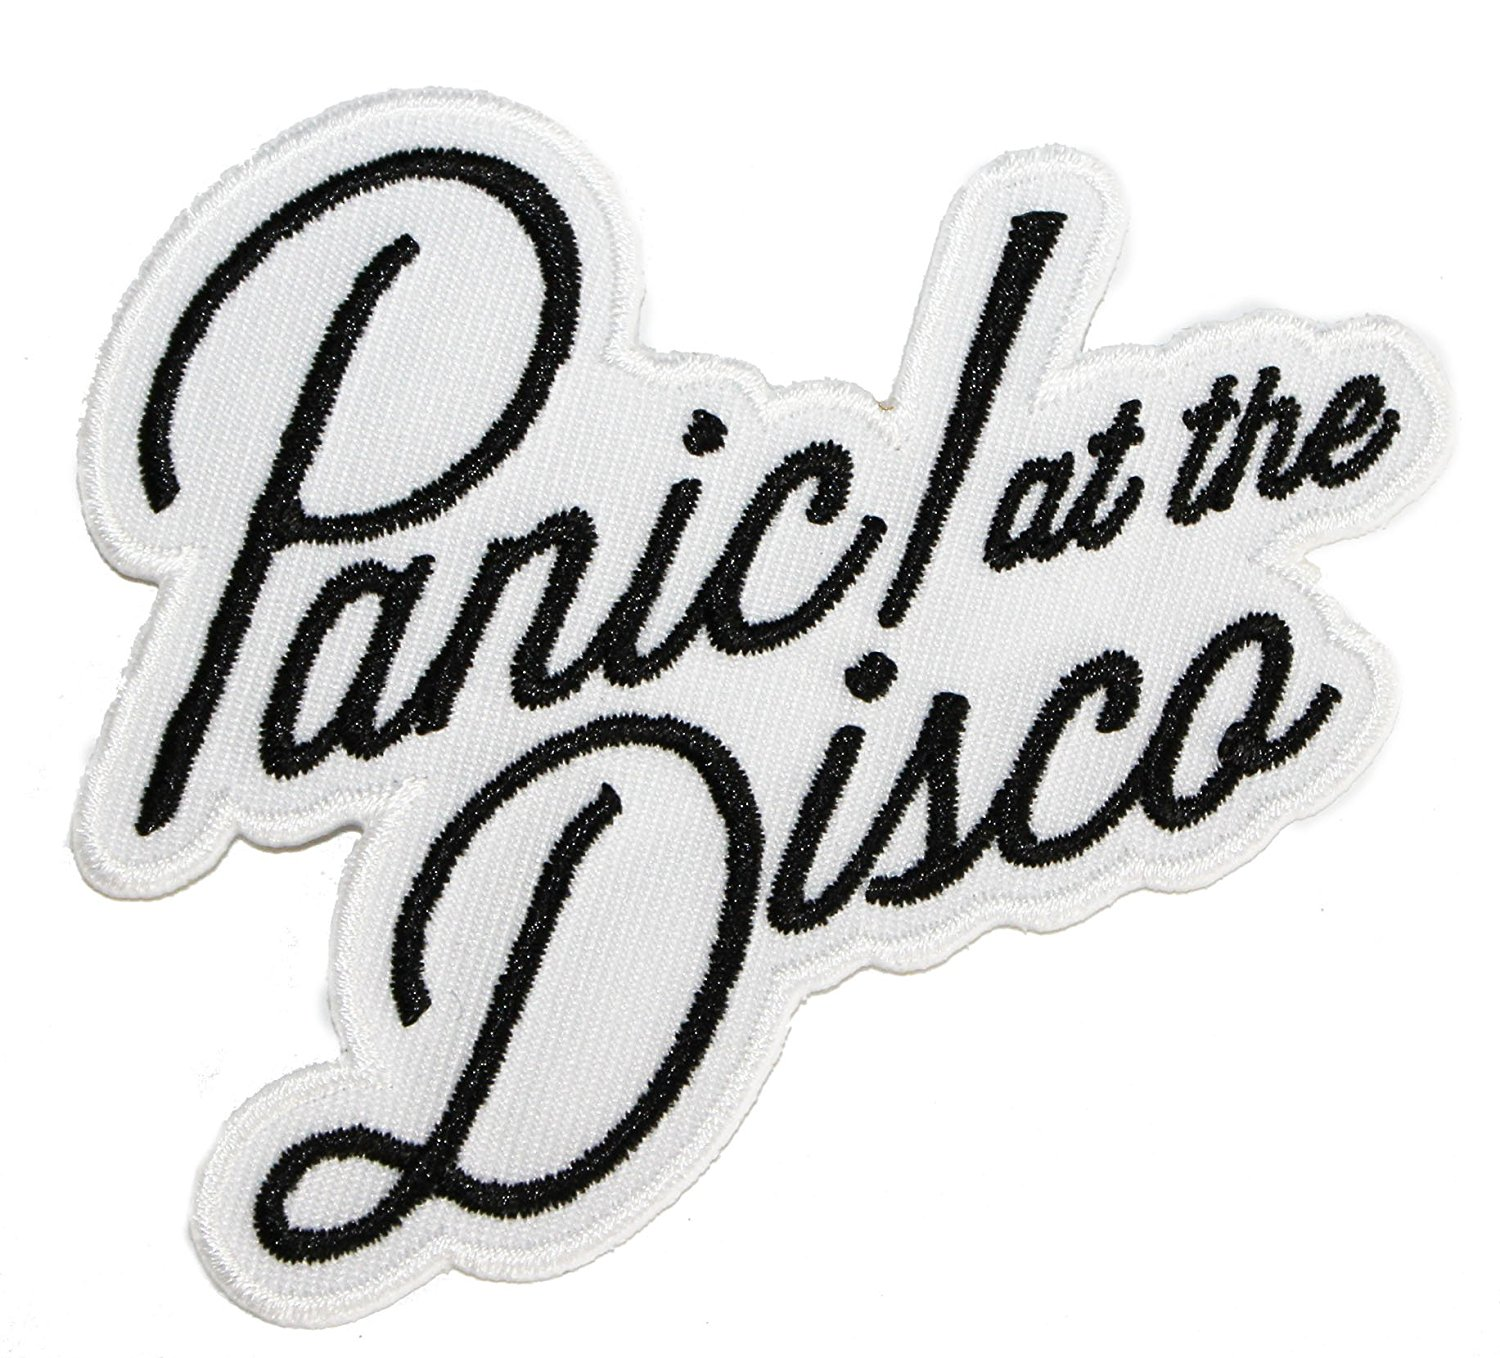 PANIC! At The Disco - Logo, Officially Licensed Artwork, Iron-On/Sew-On, Embroidered Patch